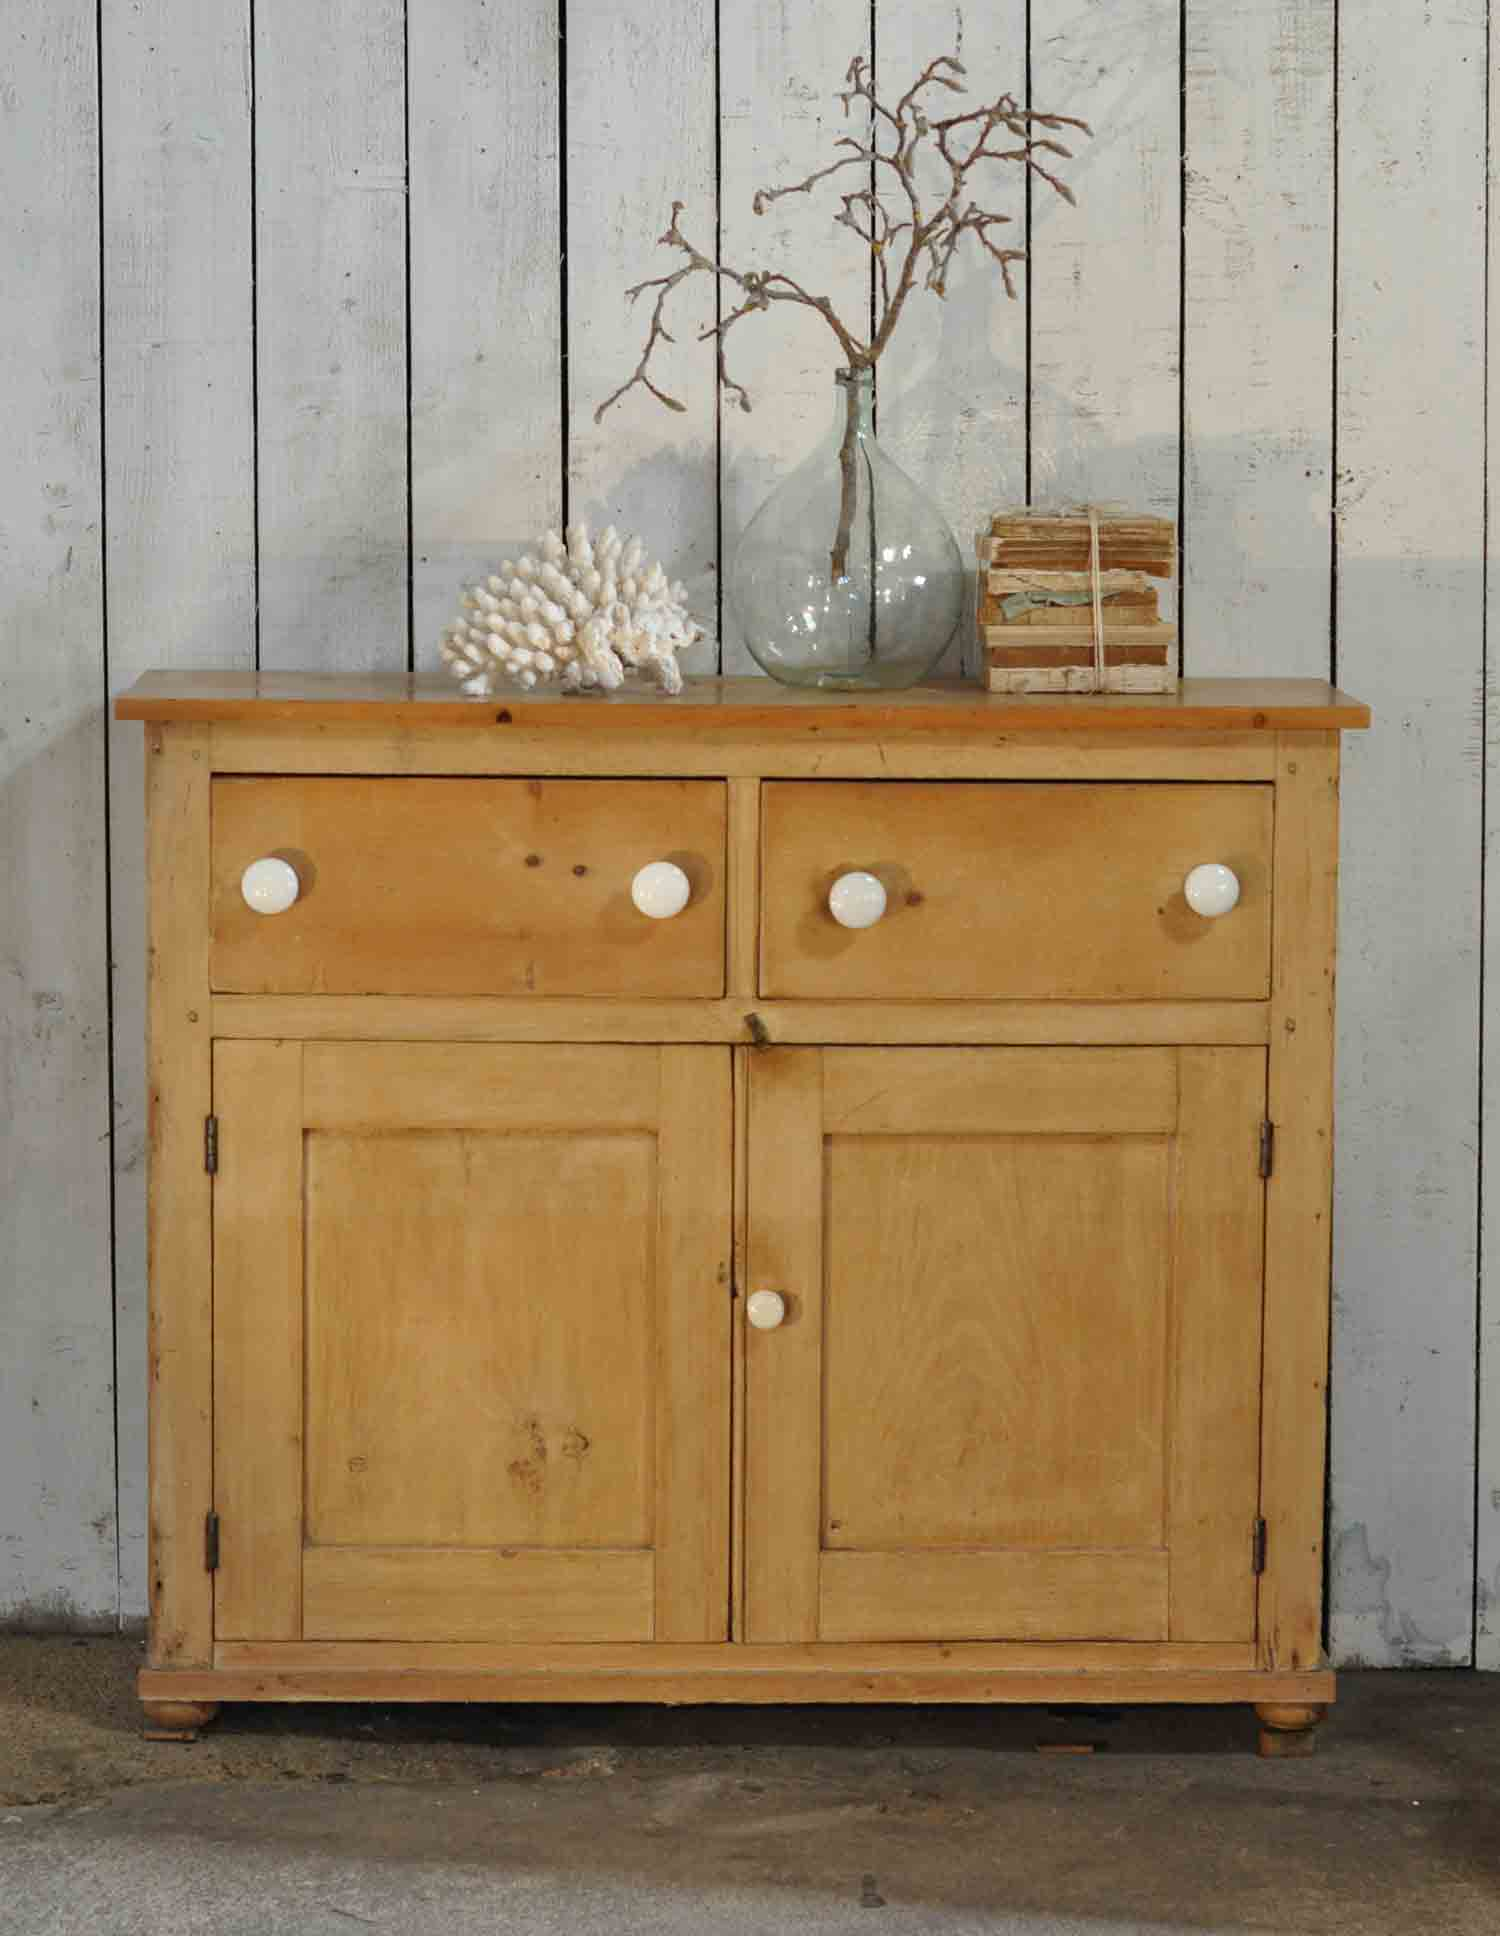 Antique Pine School Cabinet Two Drawers over Two Cupboard Doors